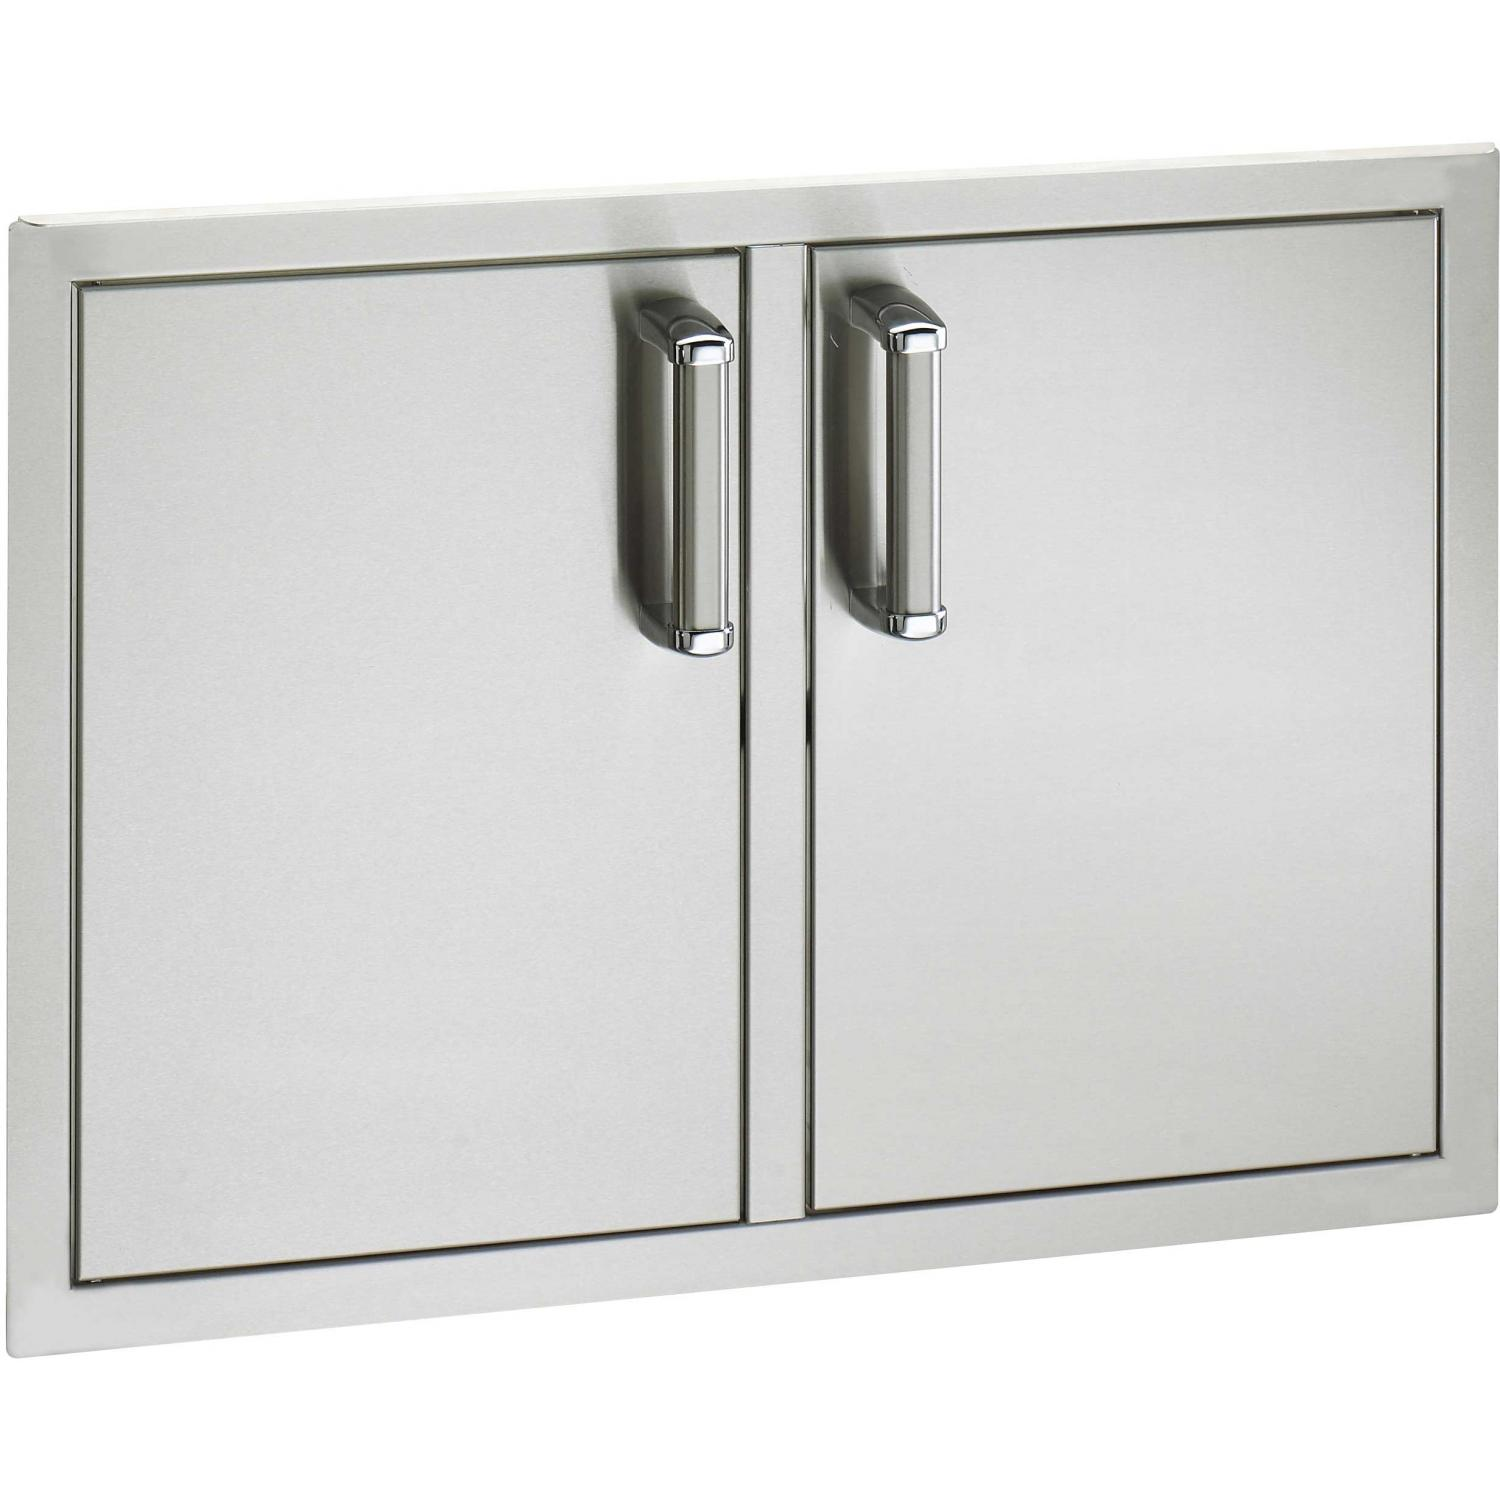 Fire Magic Echelon Flush Mount 30 Inch Double Access Door With Drawers And Trash Bin Storage at Sears.com